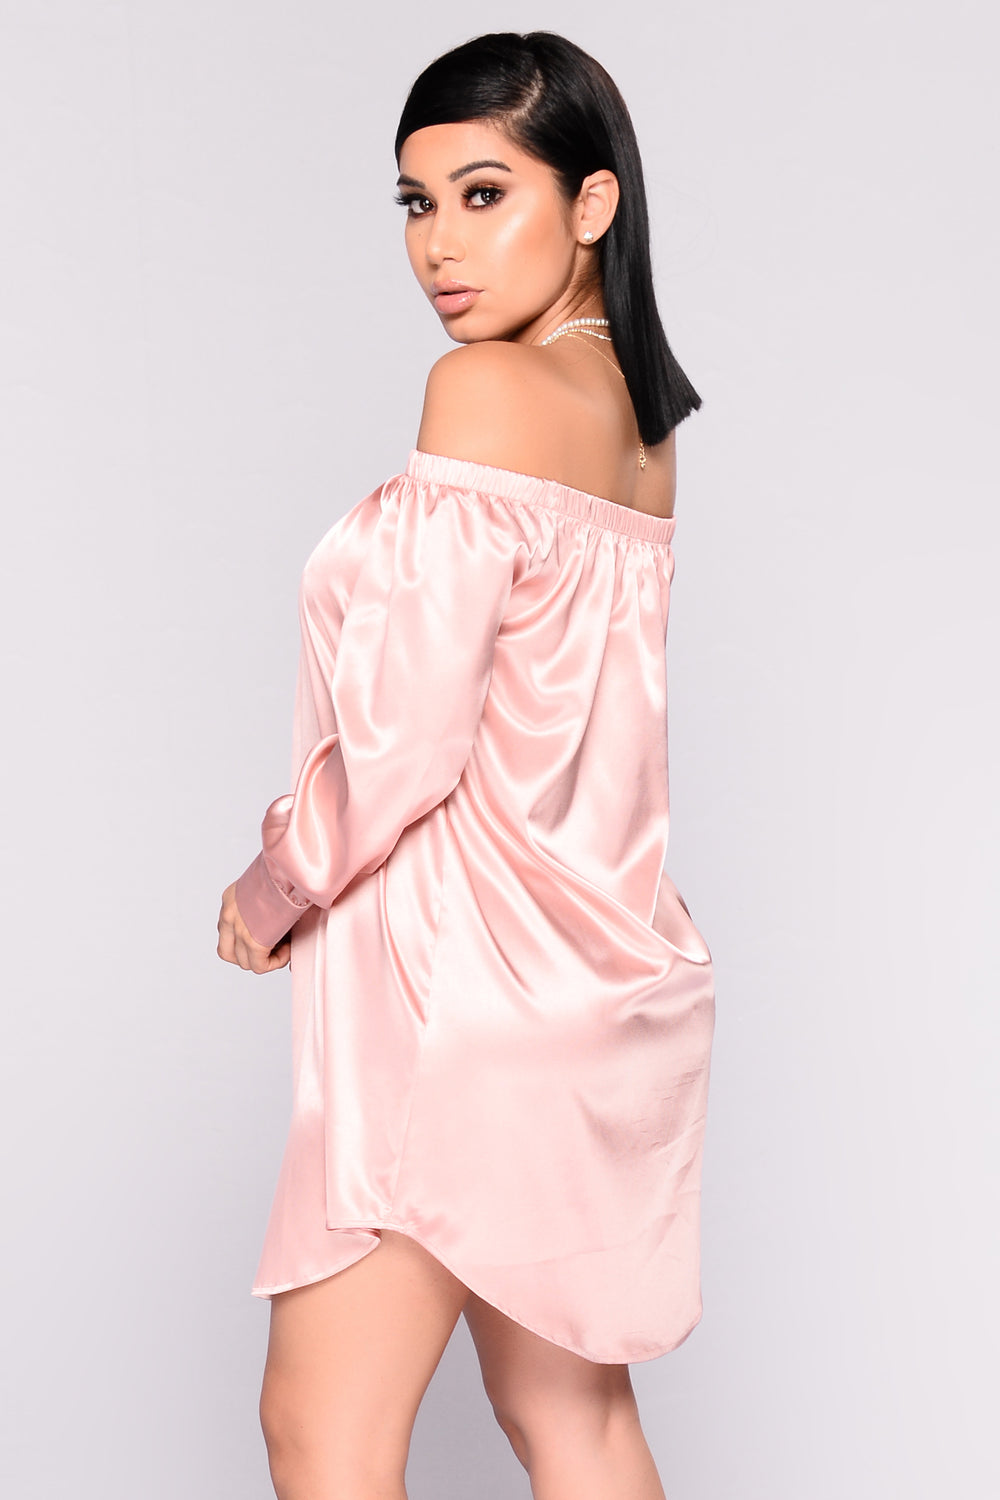 Say Hello Satin Dress - Dusty Pink